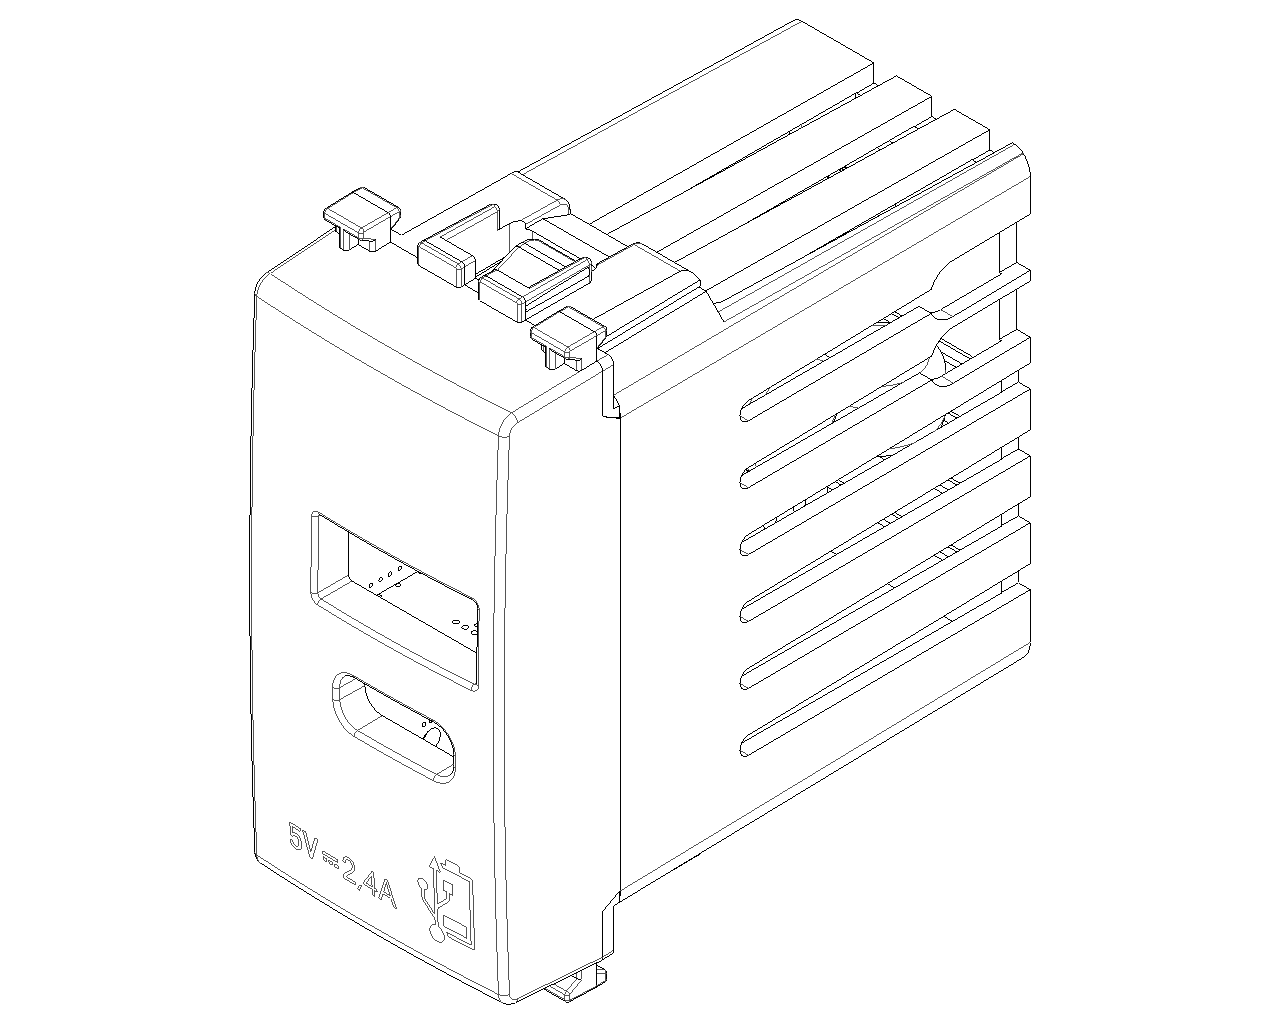 3D图示